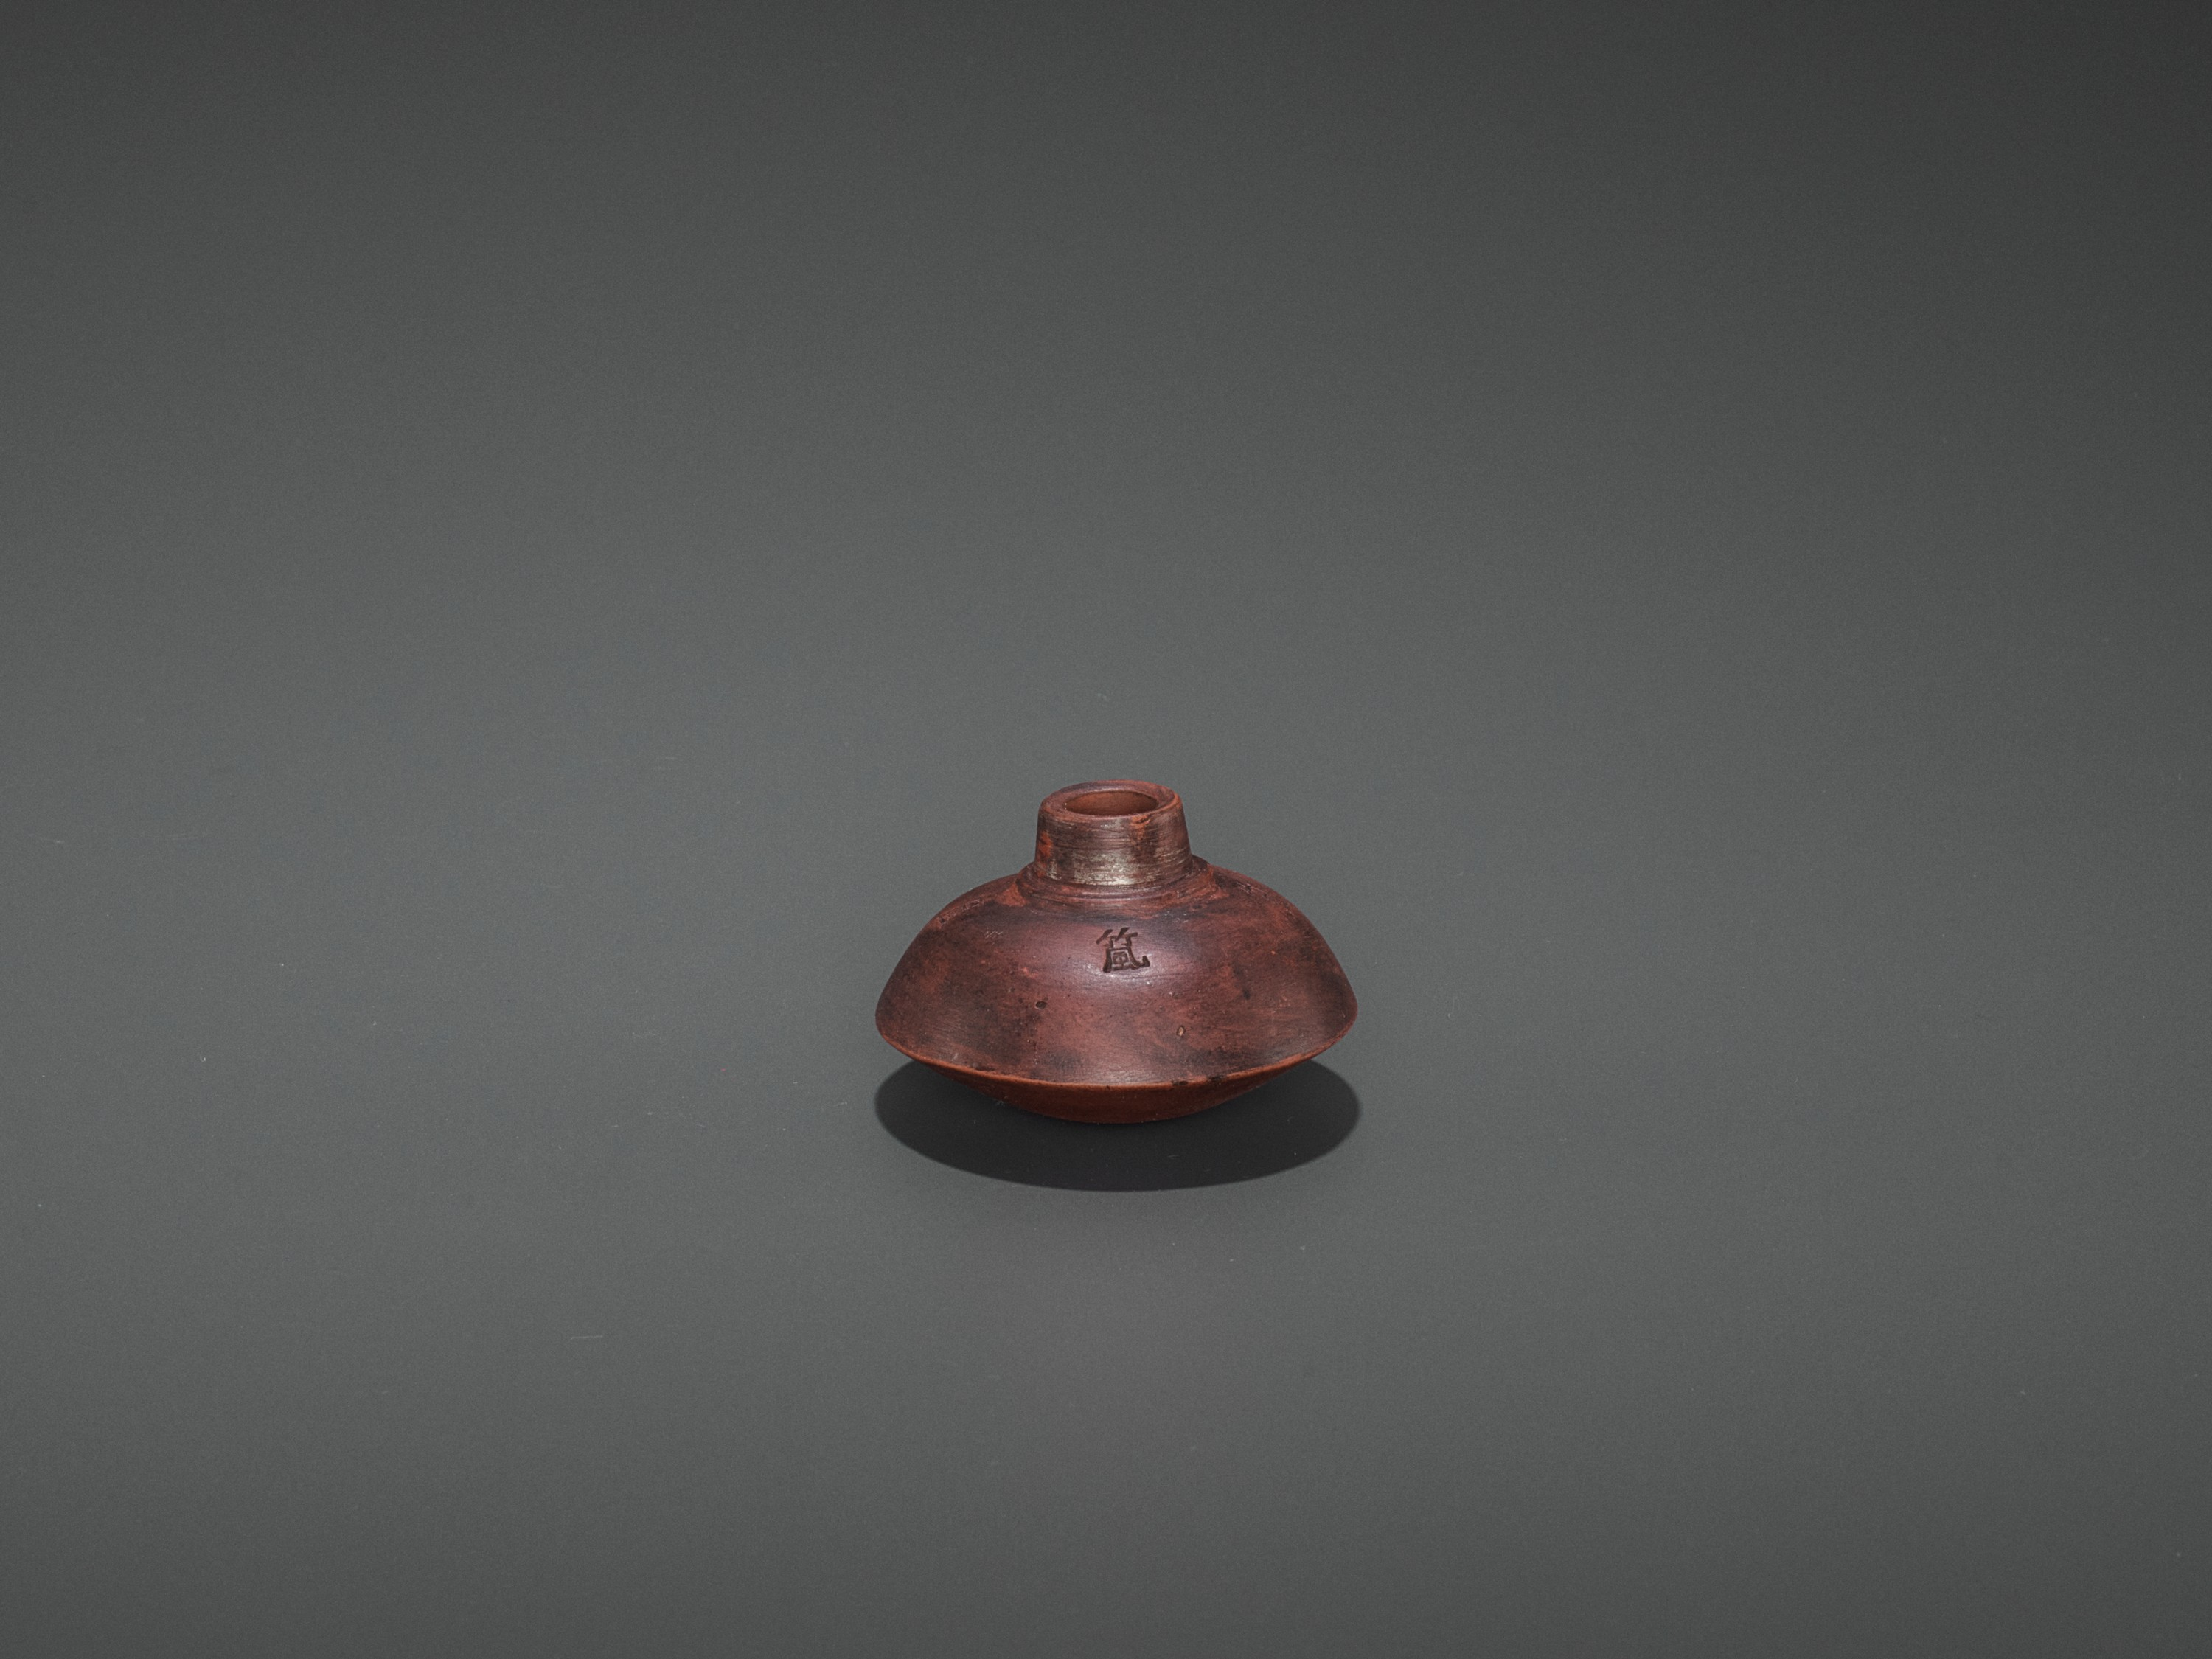 A HARDWOOD OPIUM PIPE WITH BONE, SILVER AND YIXING CERAMIC FITTINGS, LATE QING TO REPUBLIC - Image 6 of 7